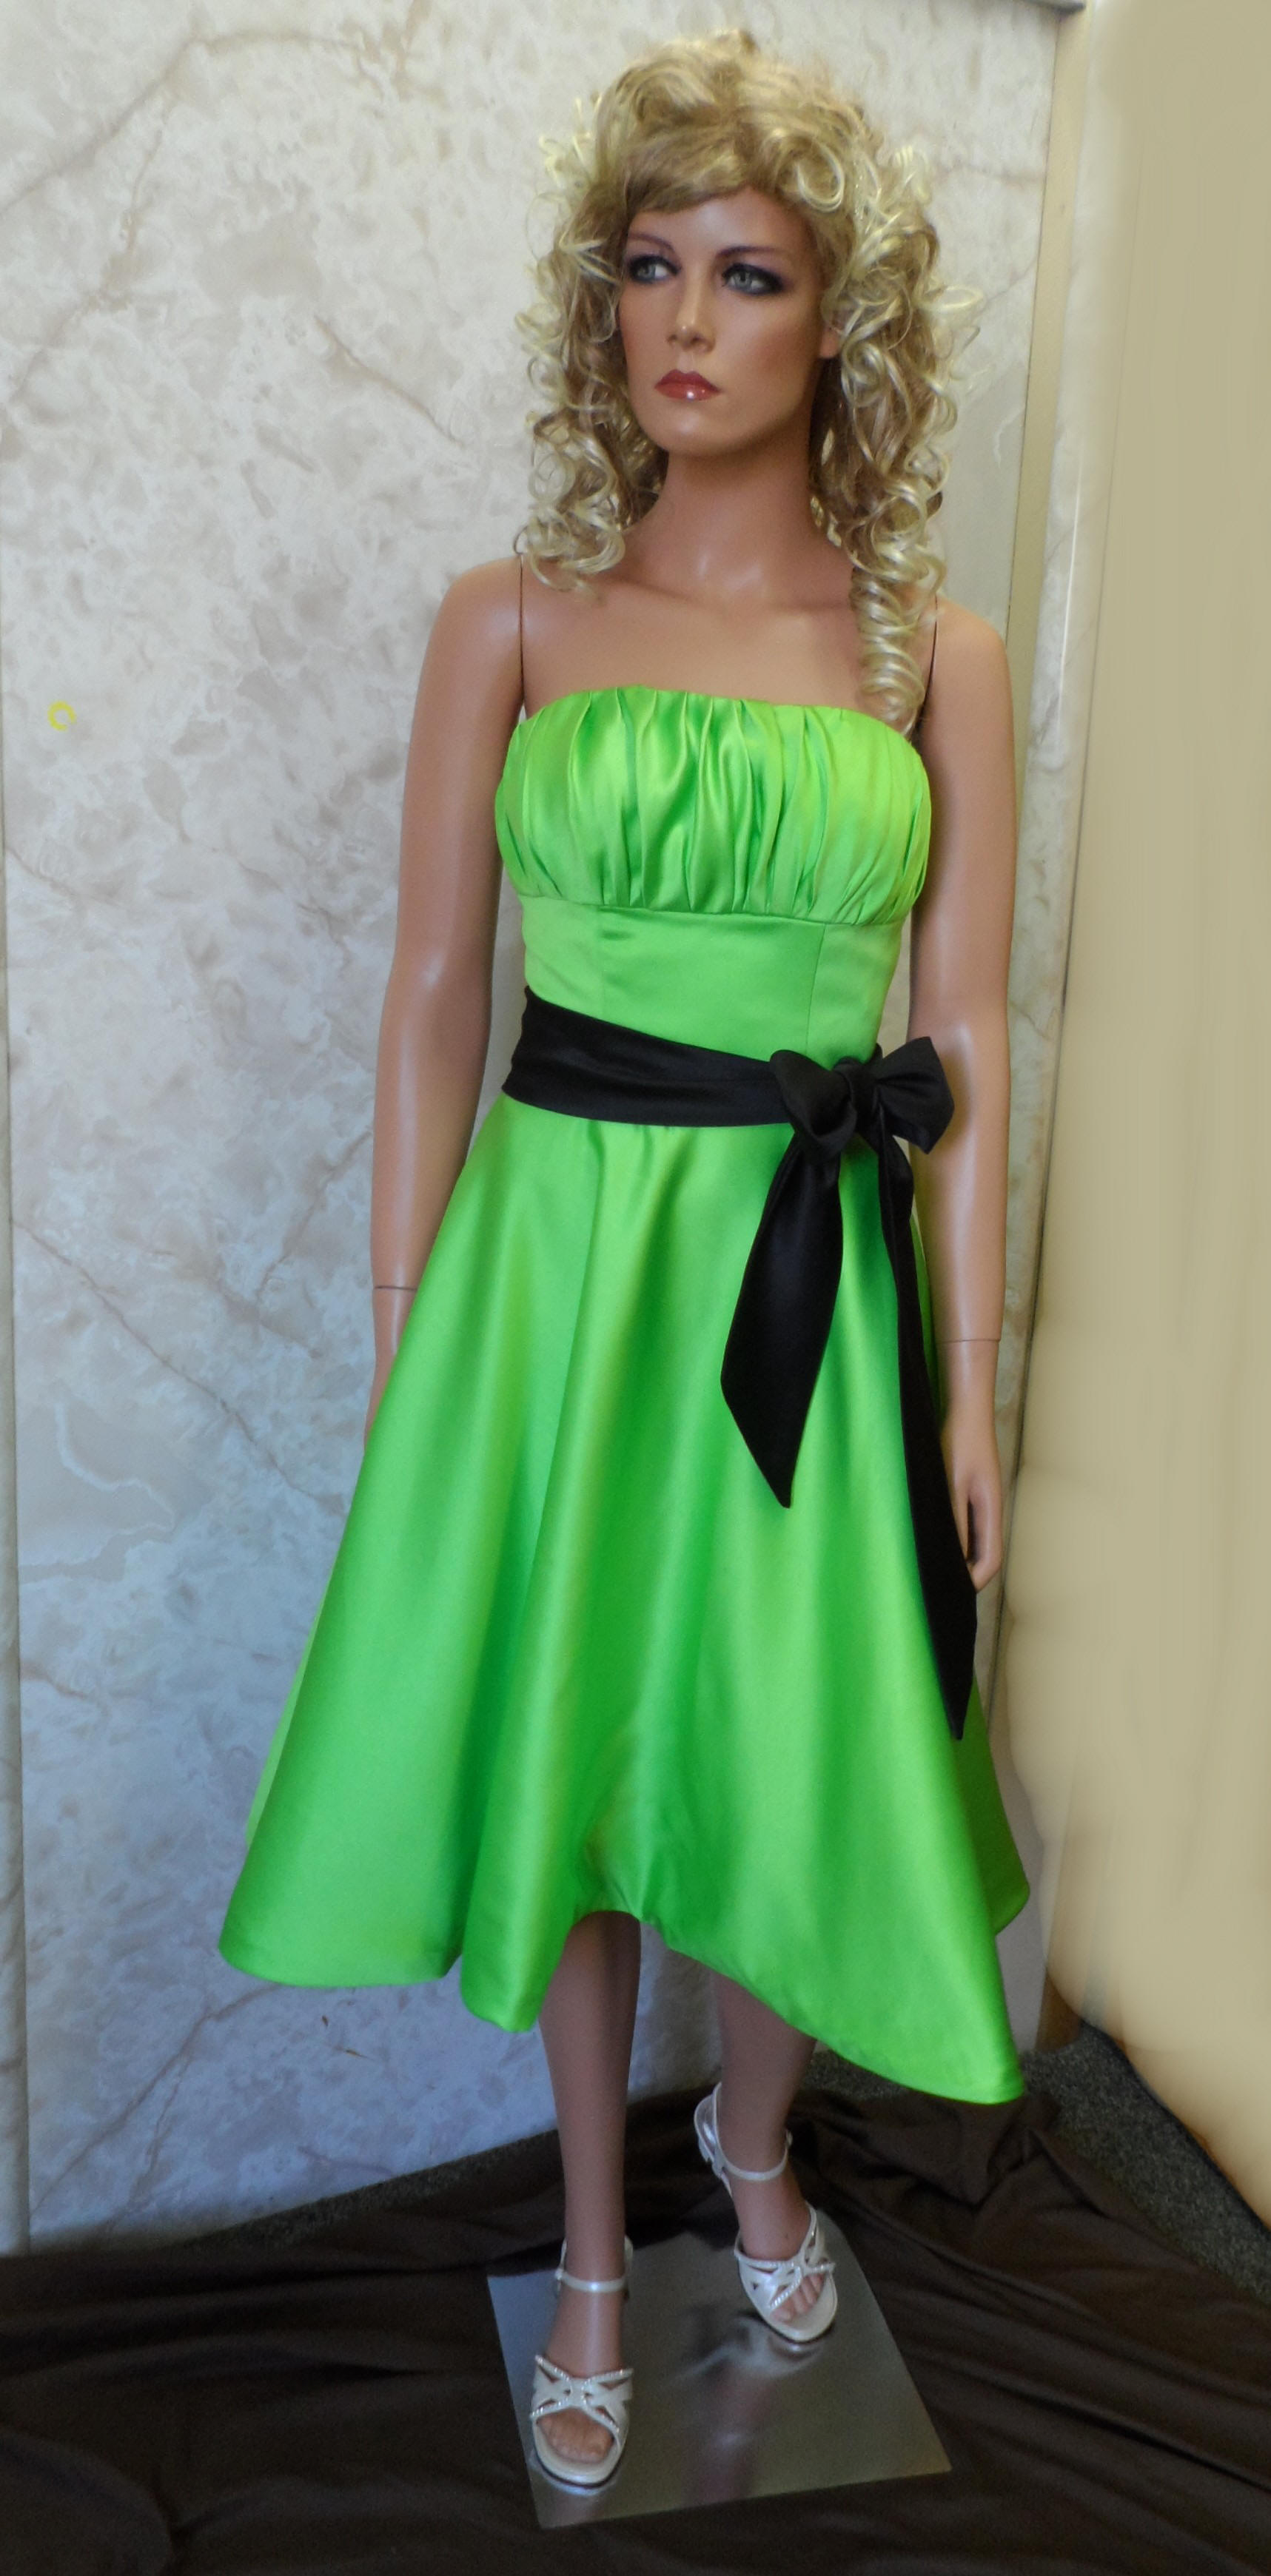 Green bridesmaid dresses short green bridesmaid dress with black sash ombrellifo Gallery